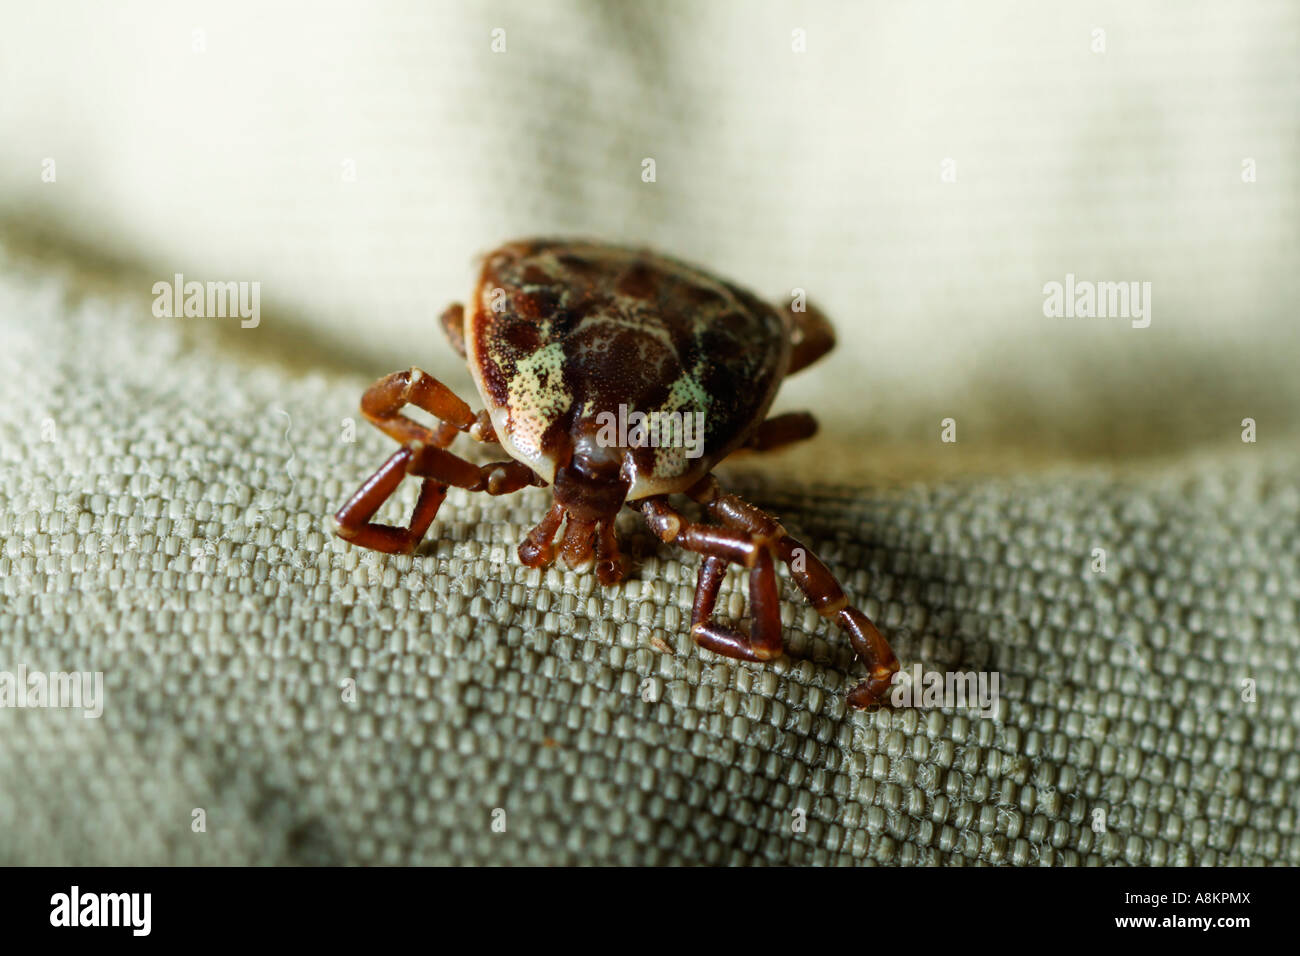 Tropical tick on wear, Costa Rica - Stock Image